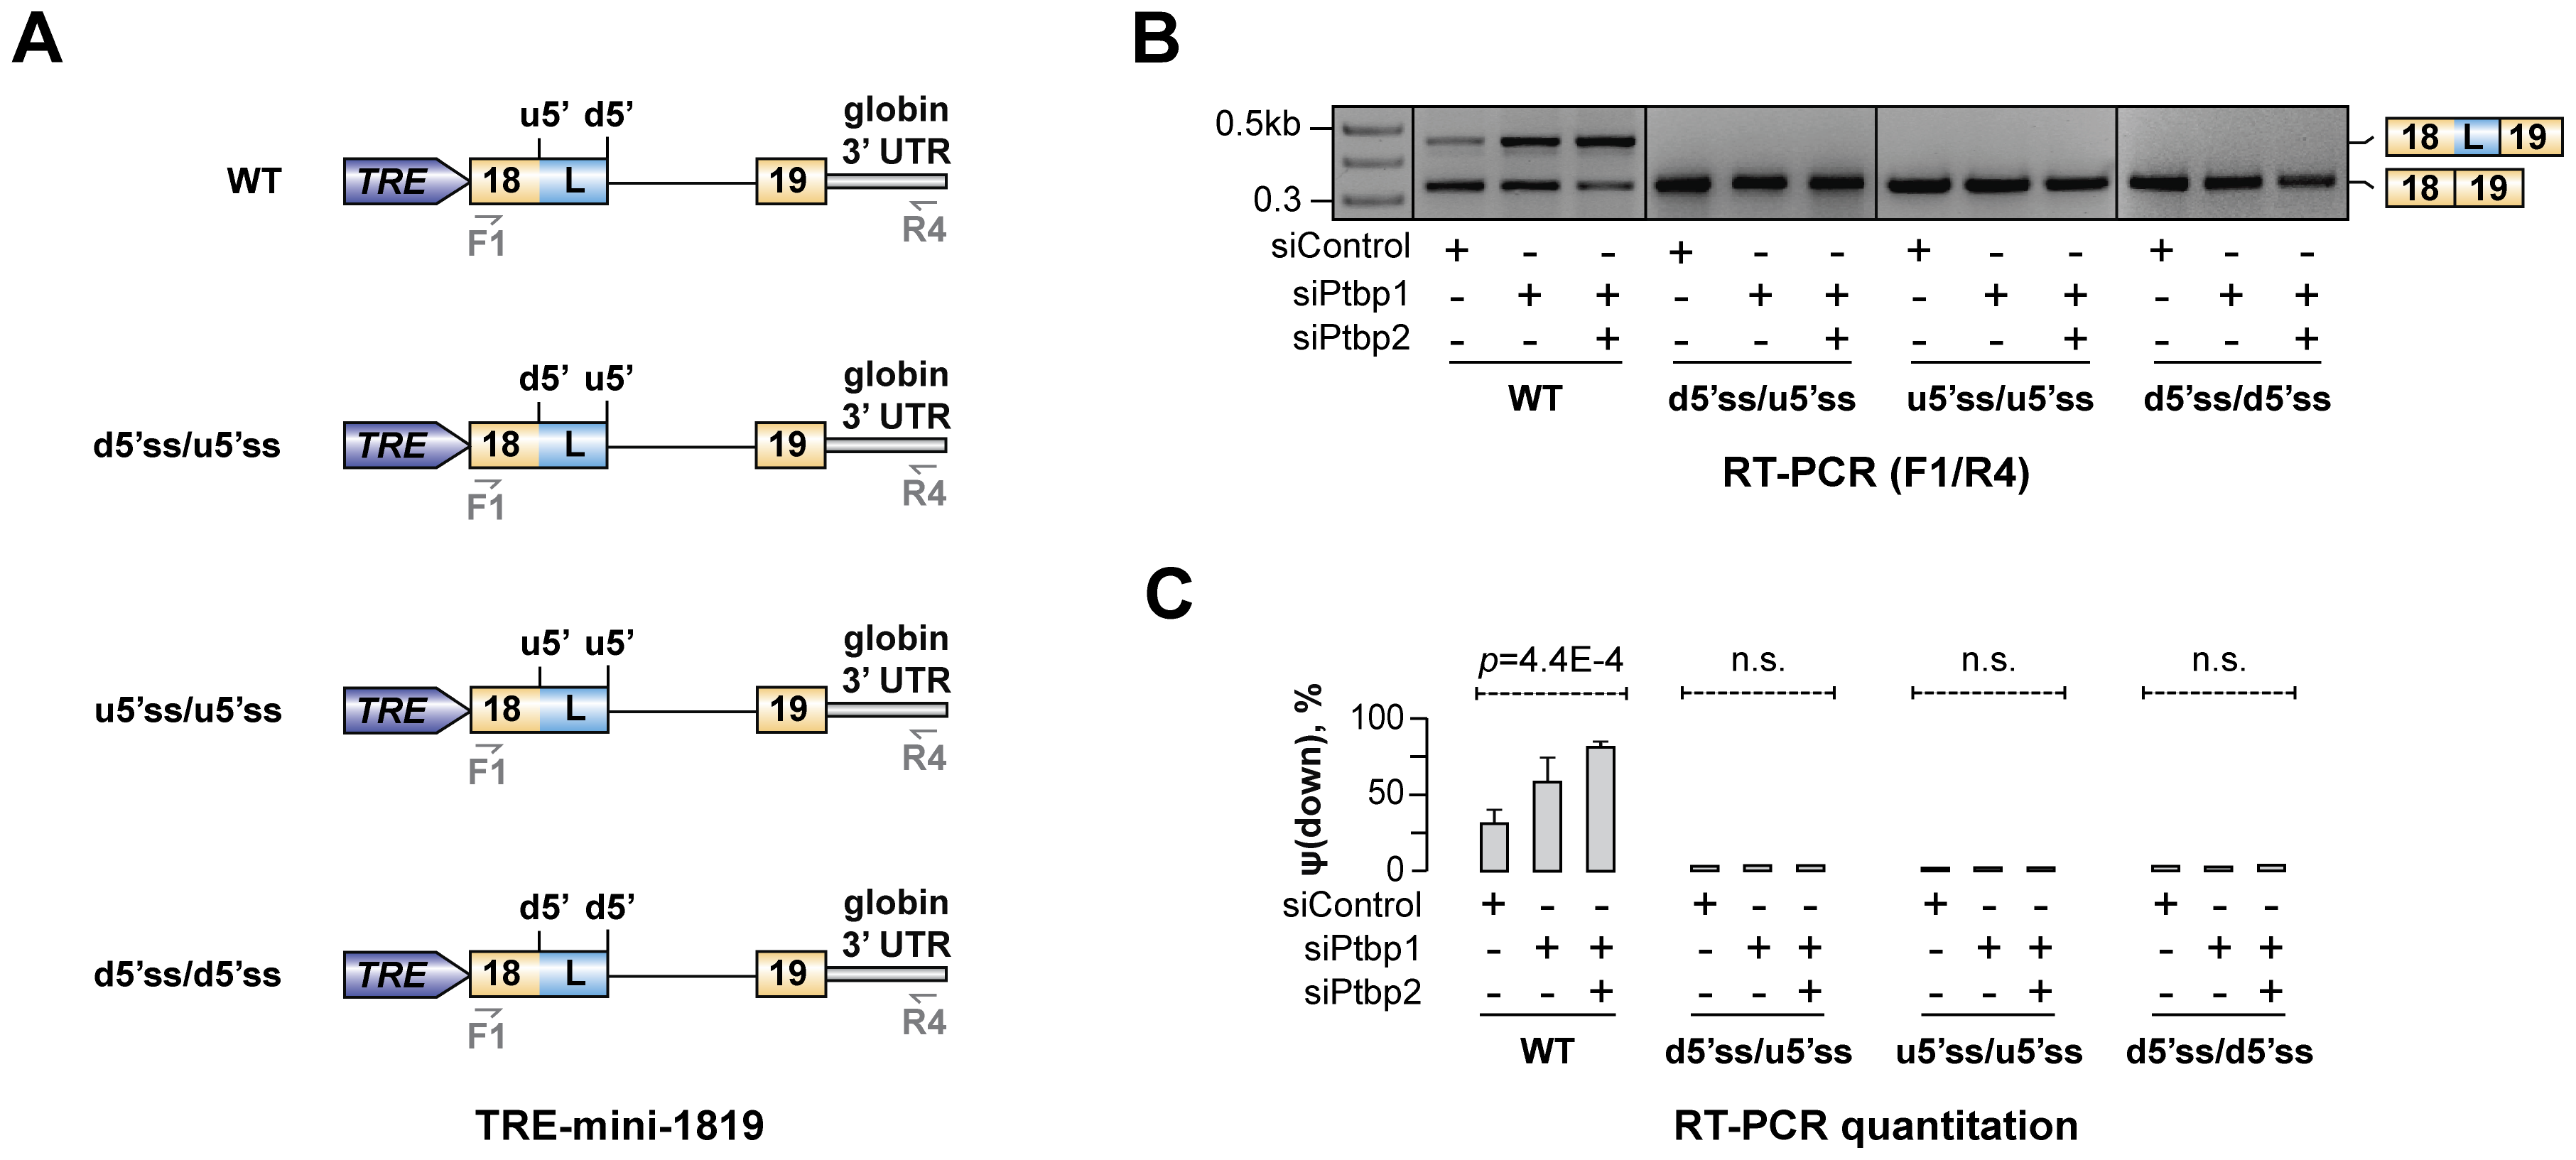 Hps1 regulation depends on u5′ss being weaker than d5′ss.